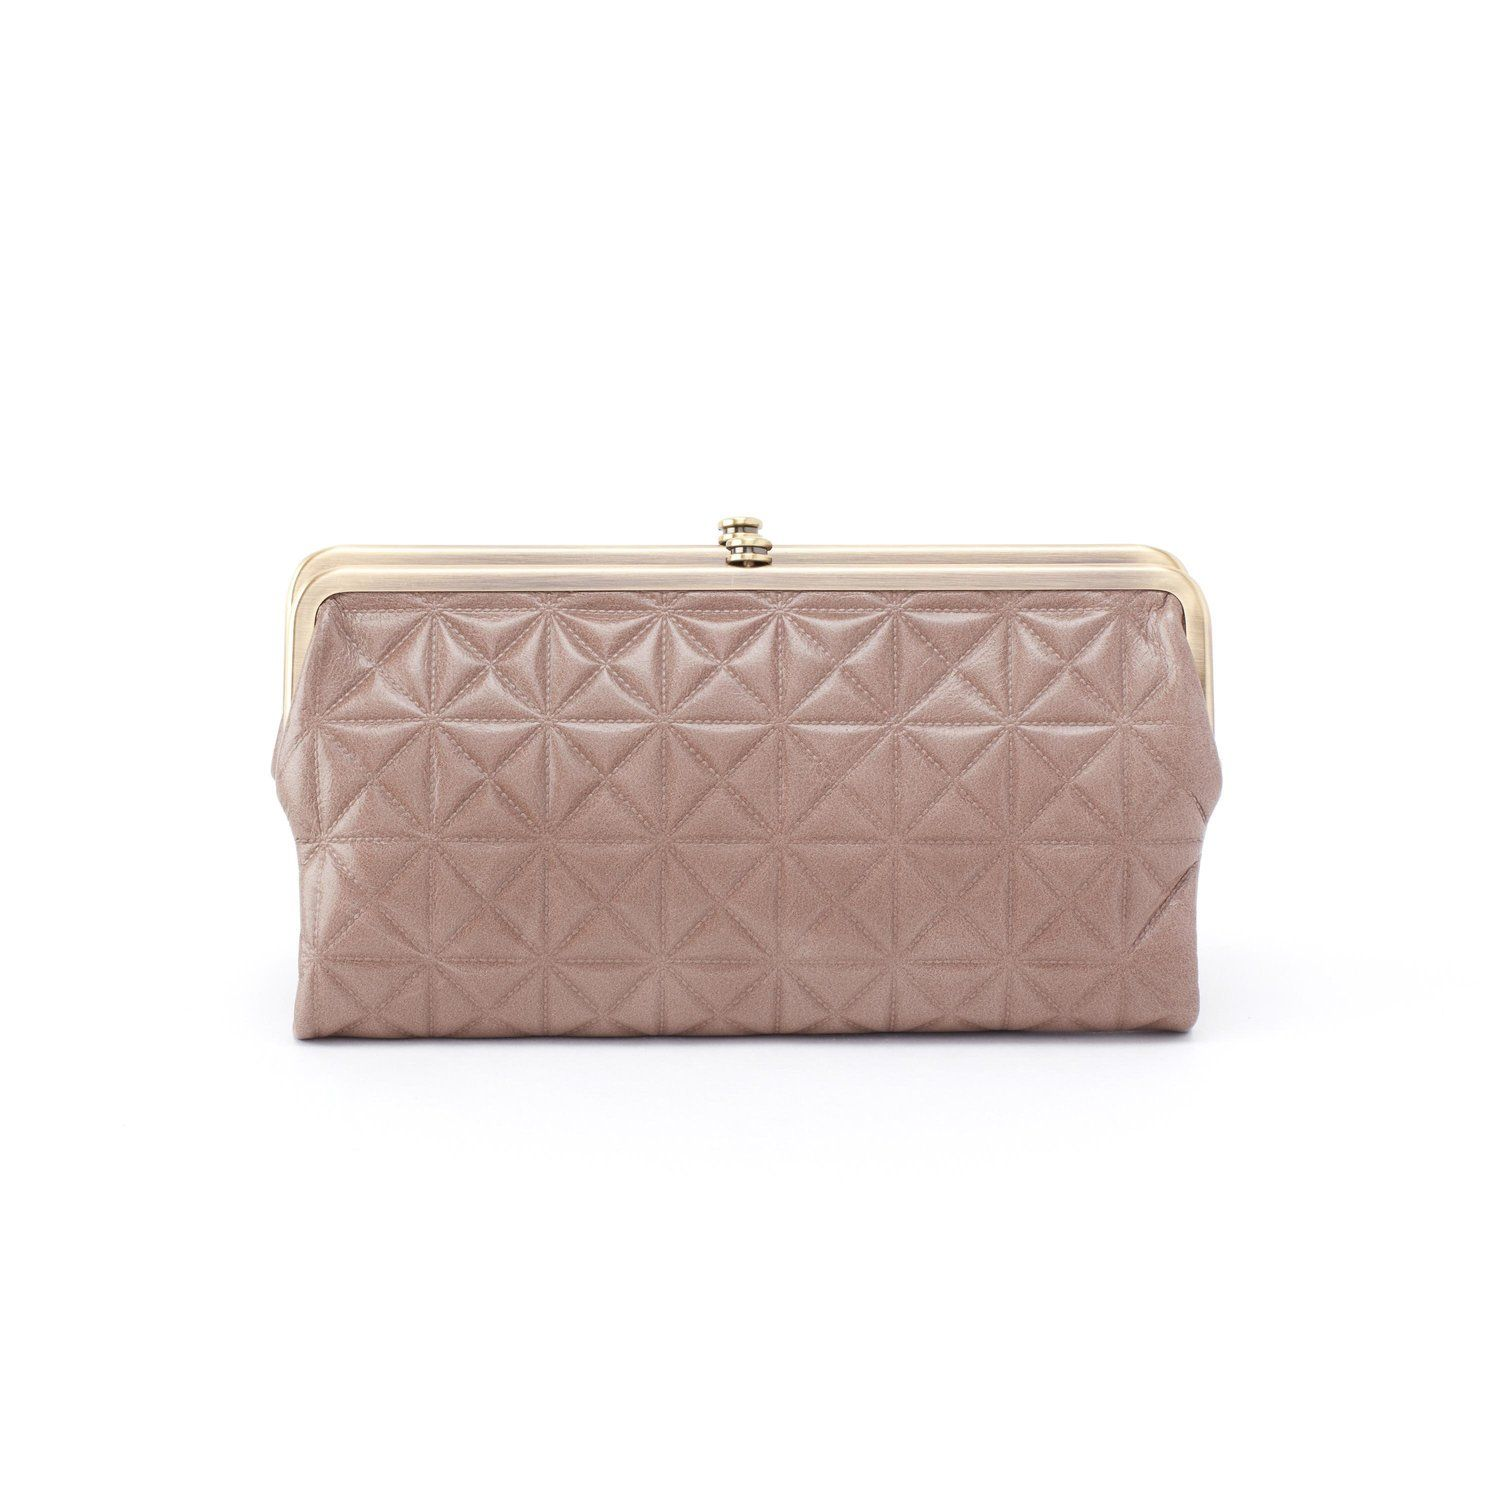 Statement Clutch - Harvest by VIDA VIDA vOu0lEvSRo